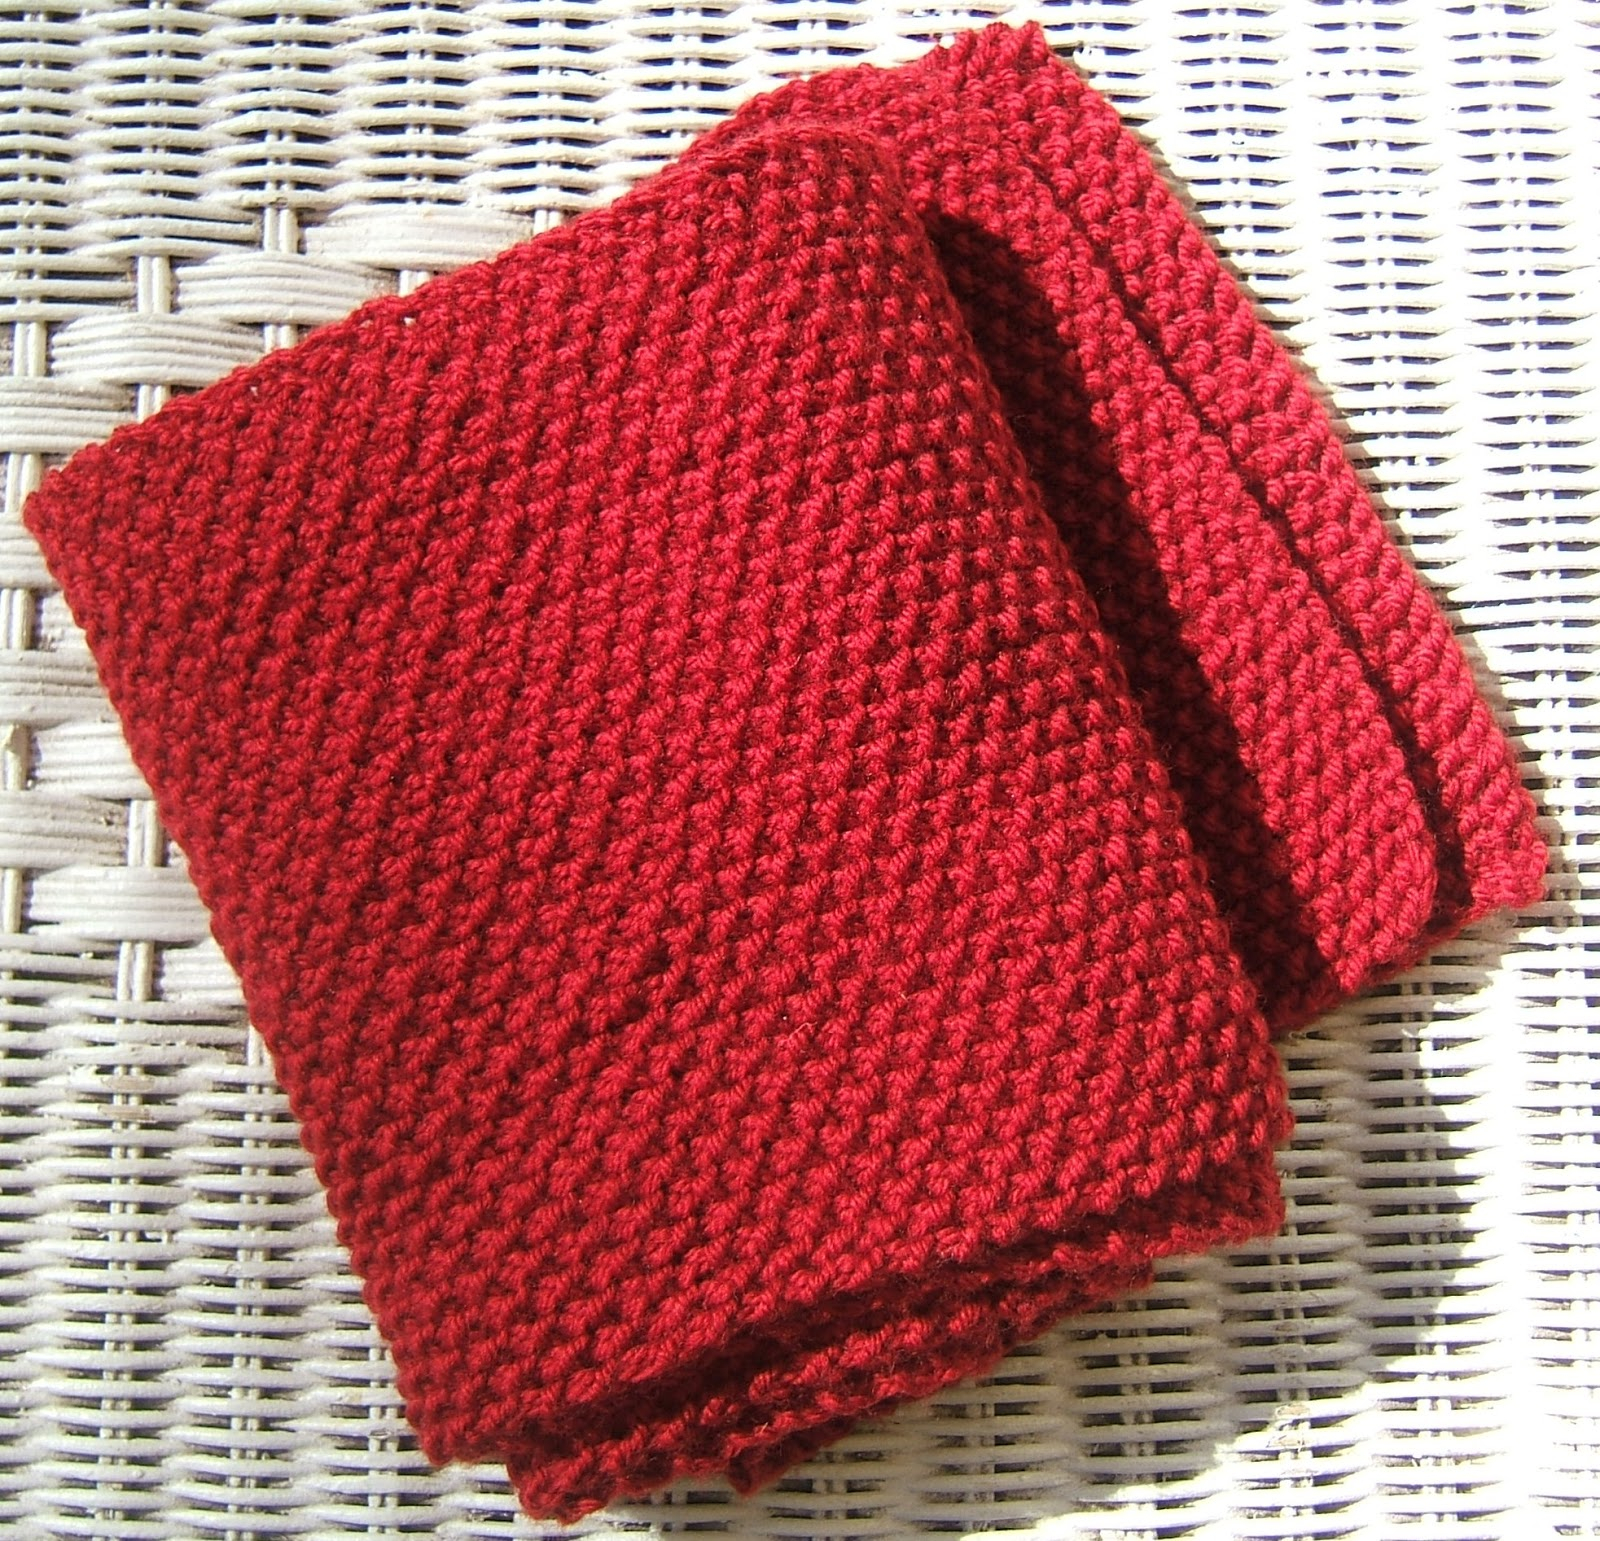 Moss Stitch Scarf Knitting Pattern Aussie Knitting Threads Moss Stitch Scarf Beginners